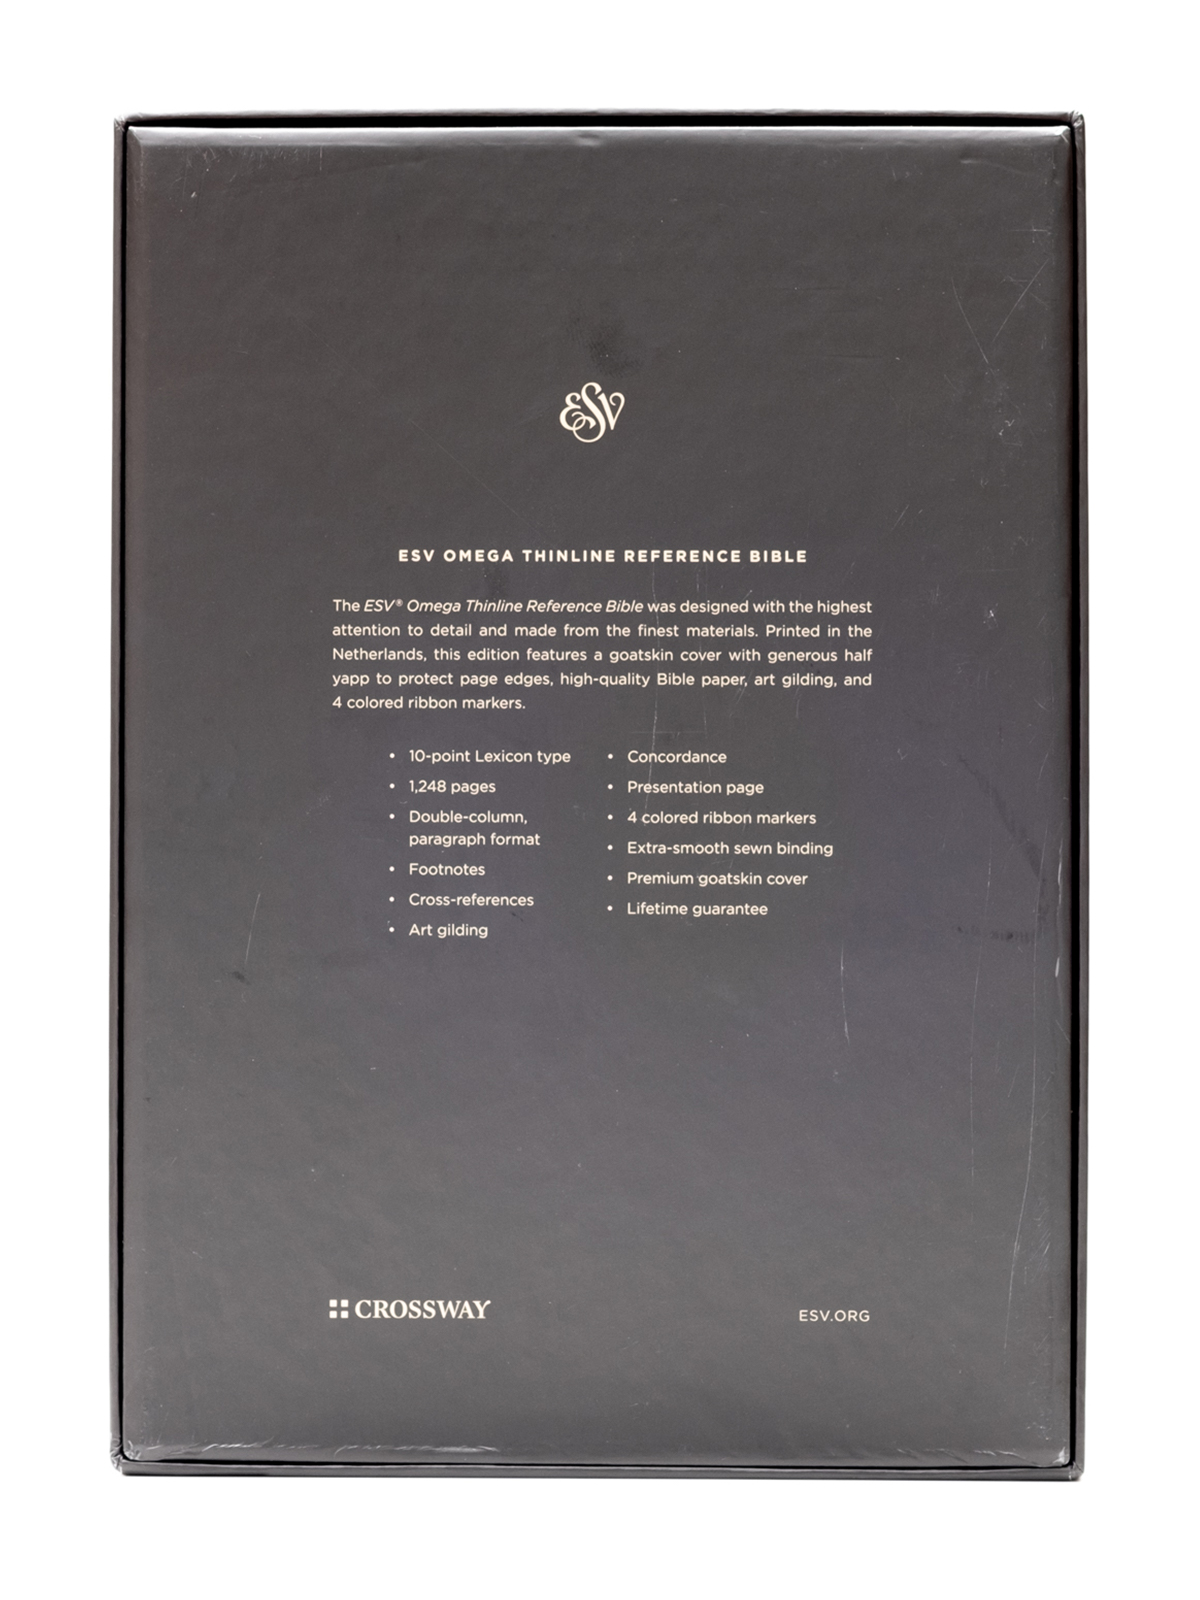 ESV Omega Bible Back Cover